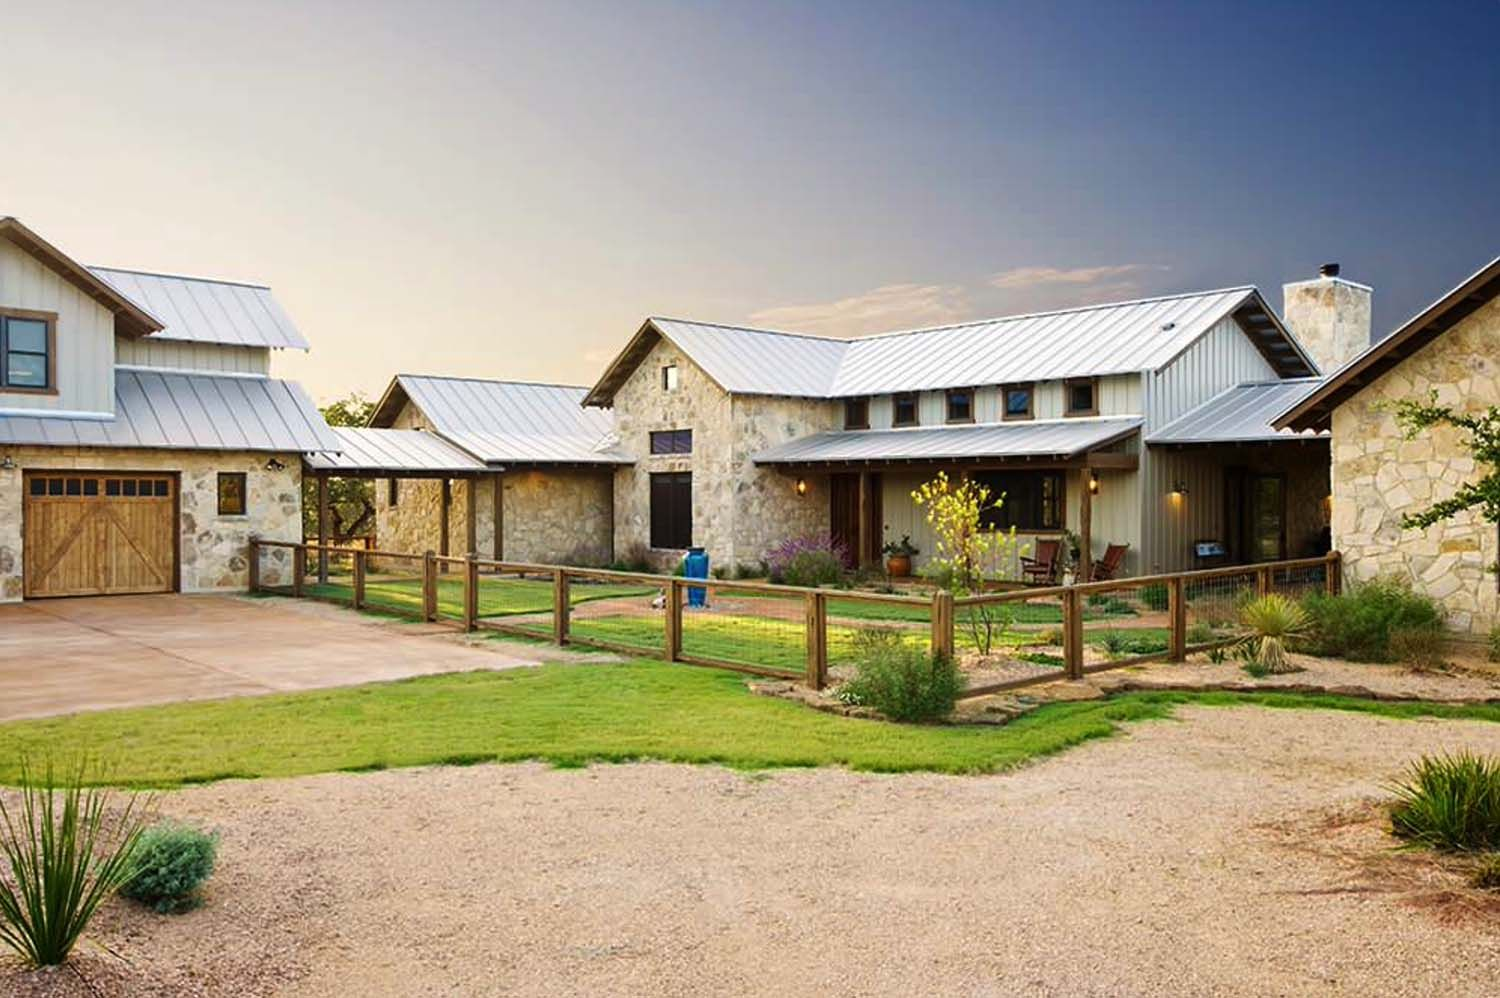 Rustic Ranch House Designed For Family Gatherings In Texas Ranch House Designs Ranch Style Homes Ranch House